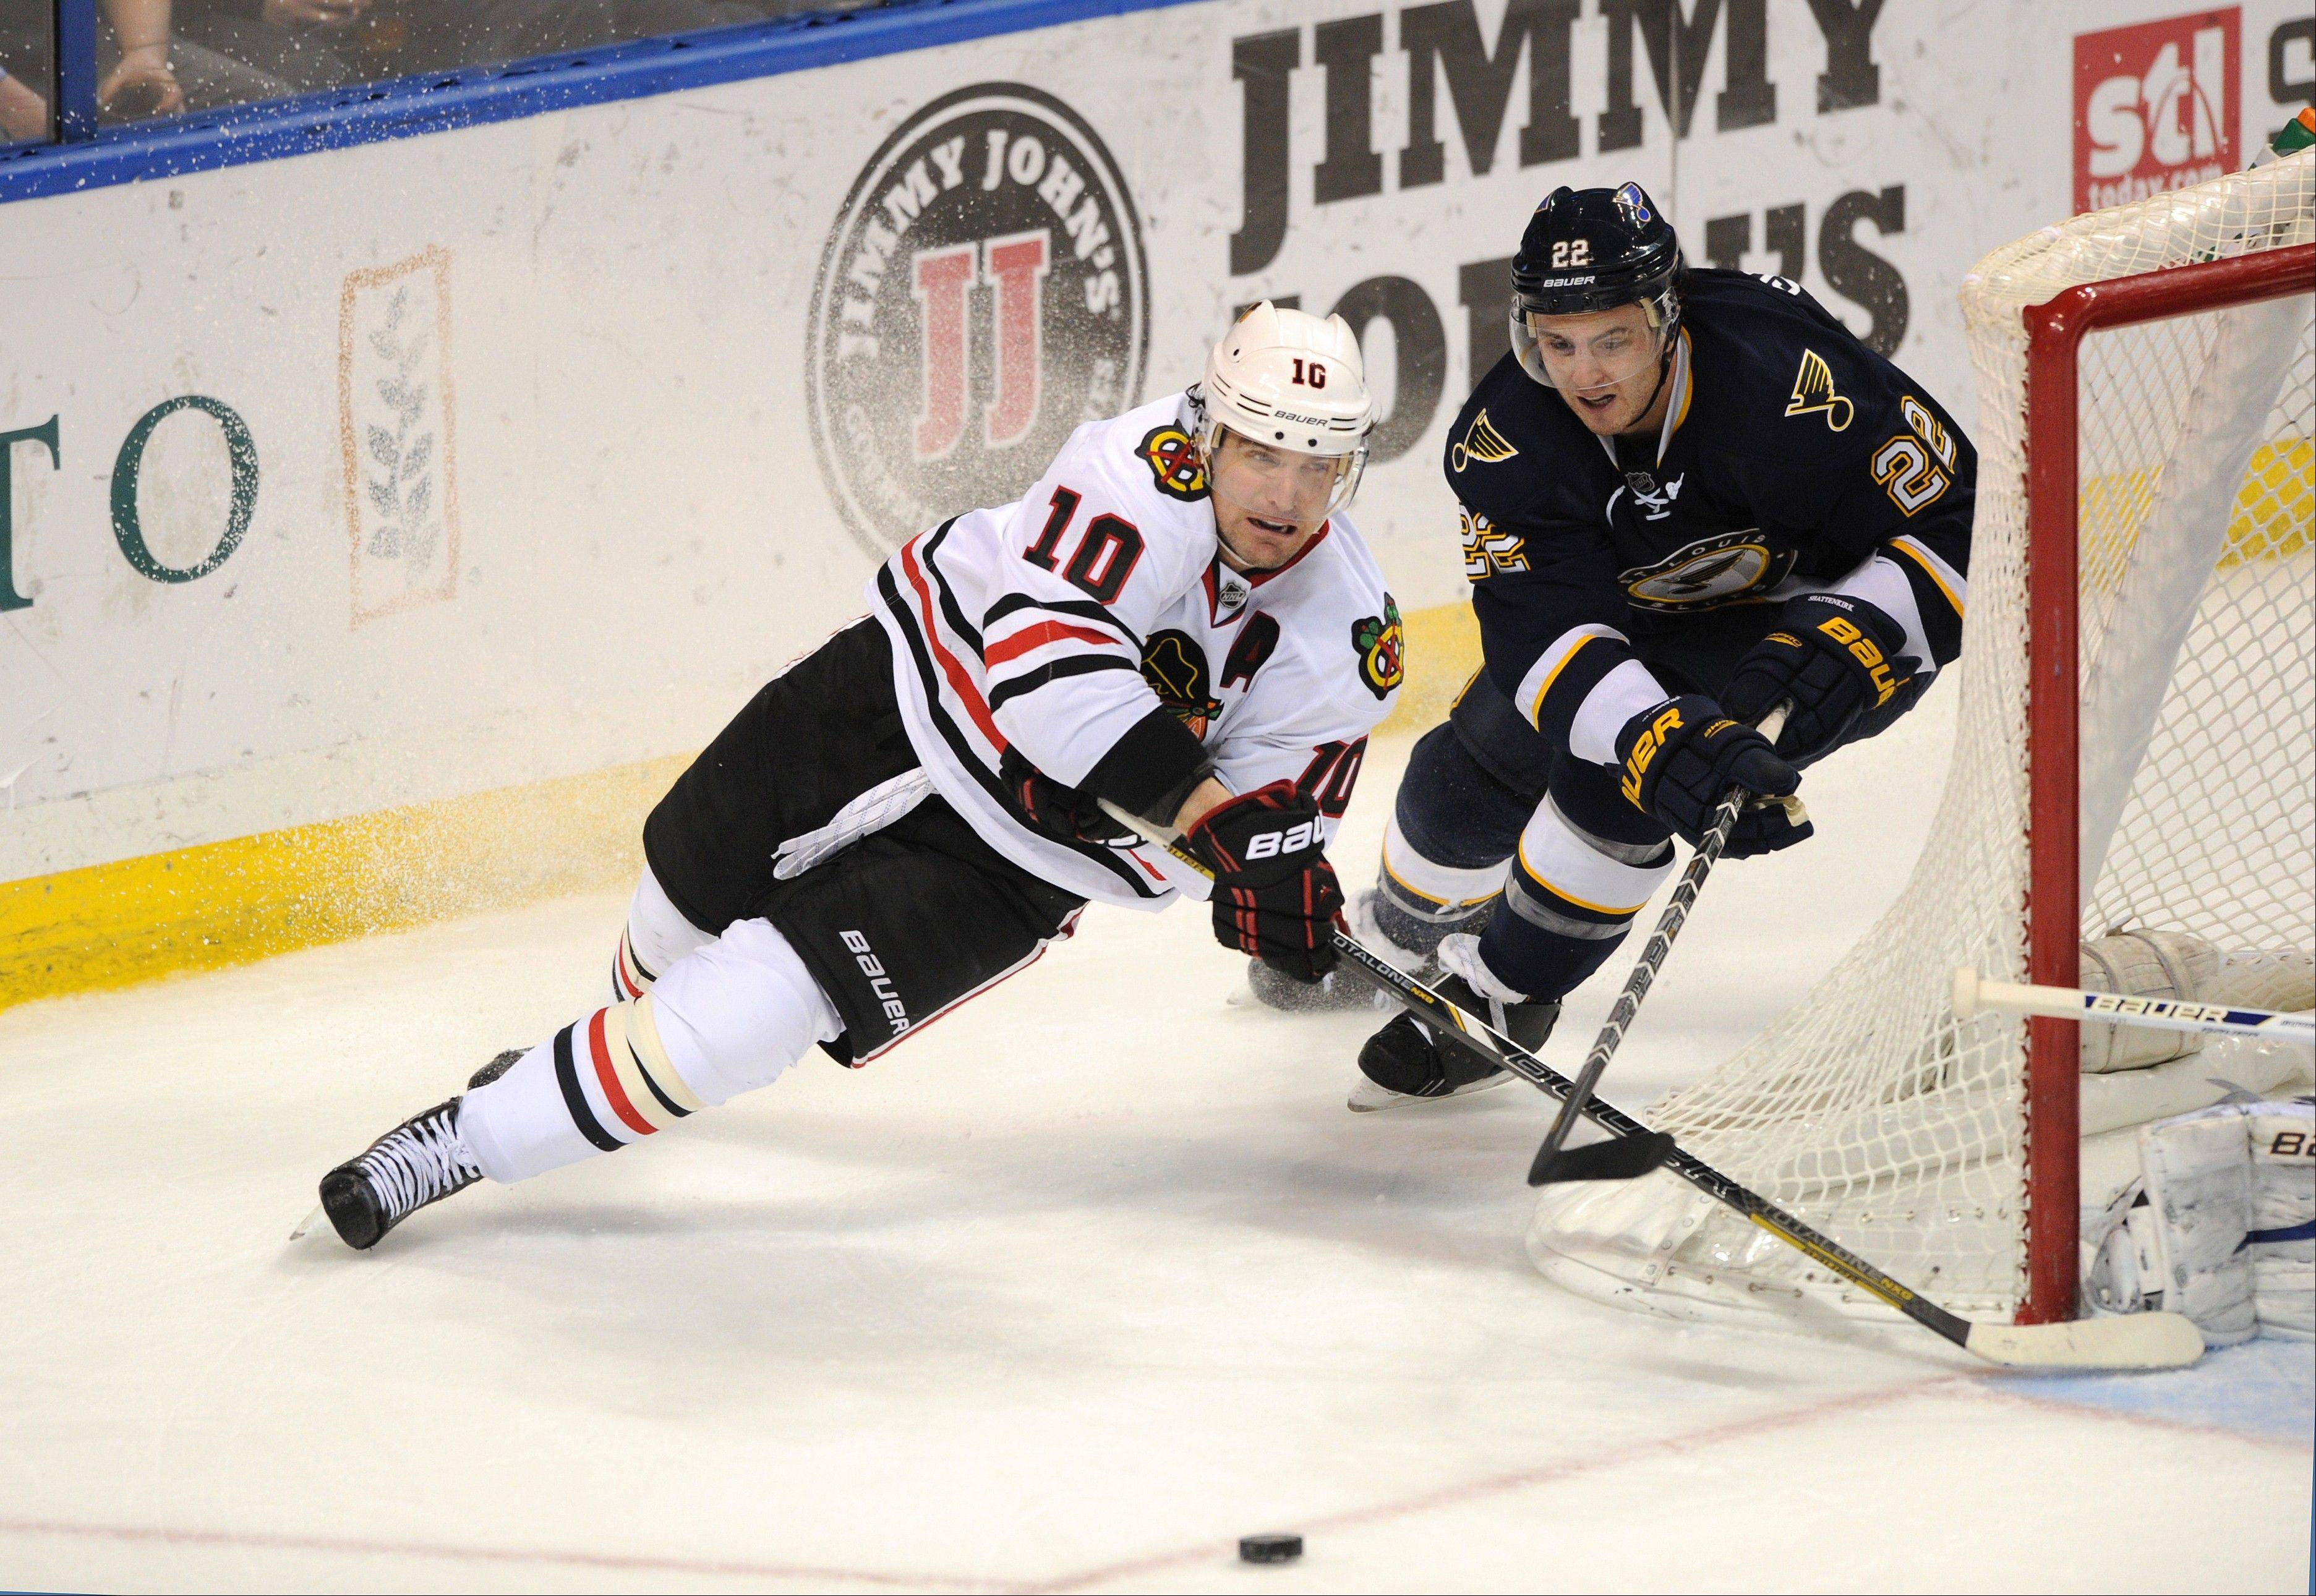 St. Louis Blues' Kevin Shattenkirk (22) and Chicago Blackhawks' Patrick Sharp (10) reach for the puck in an NHL hockey game Saturday, Dec. 28, 2013, in St. Louis.